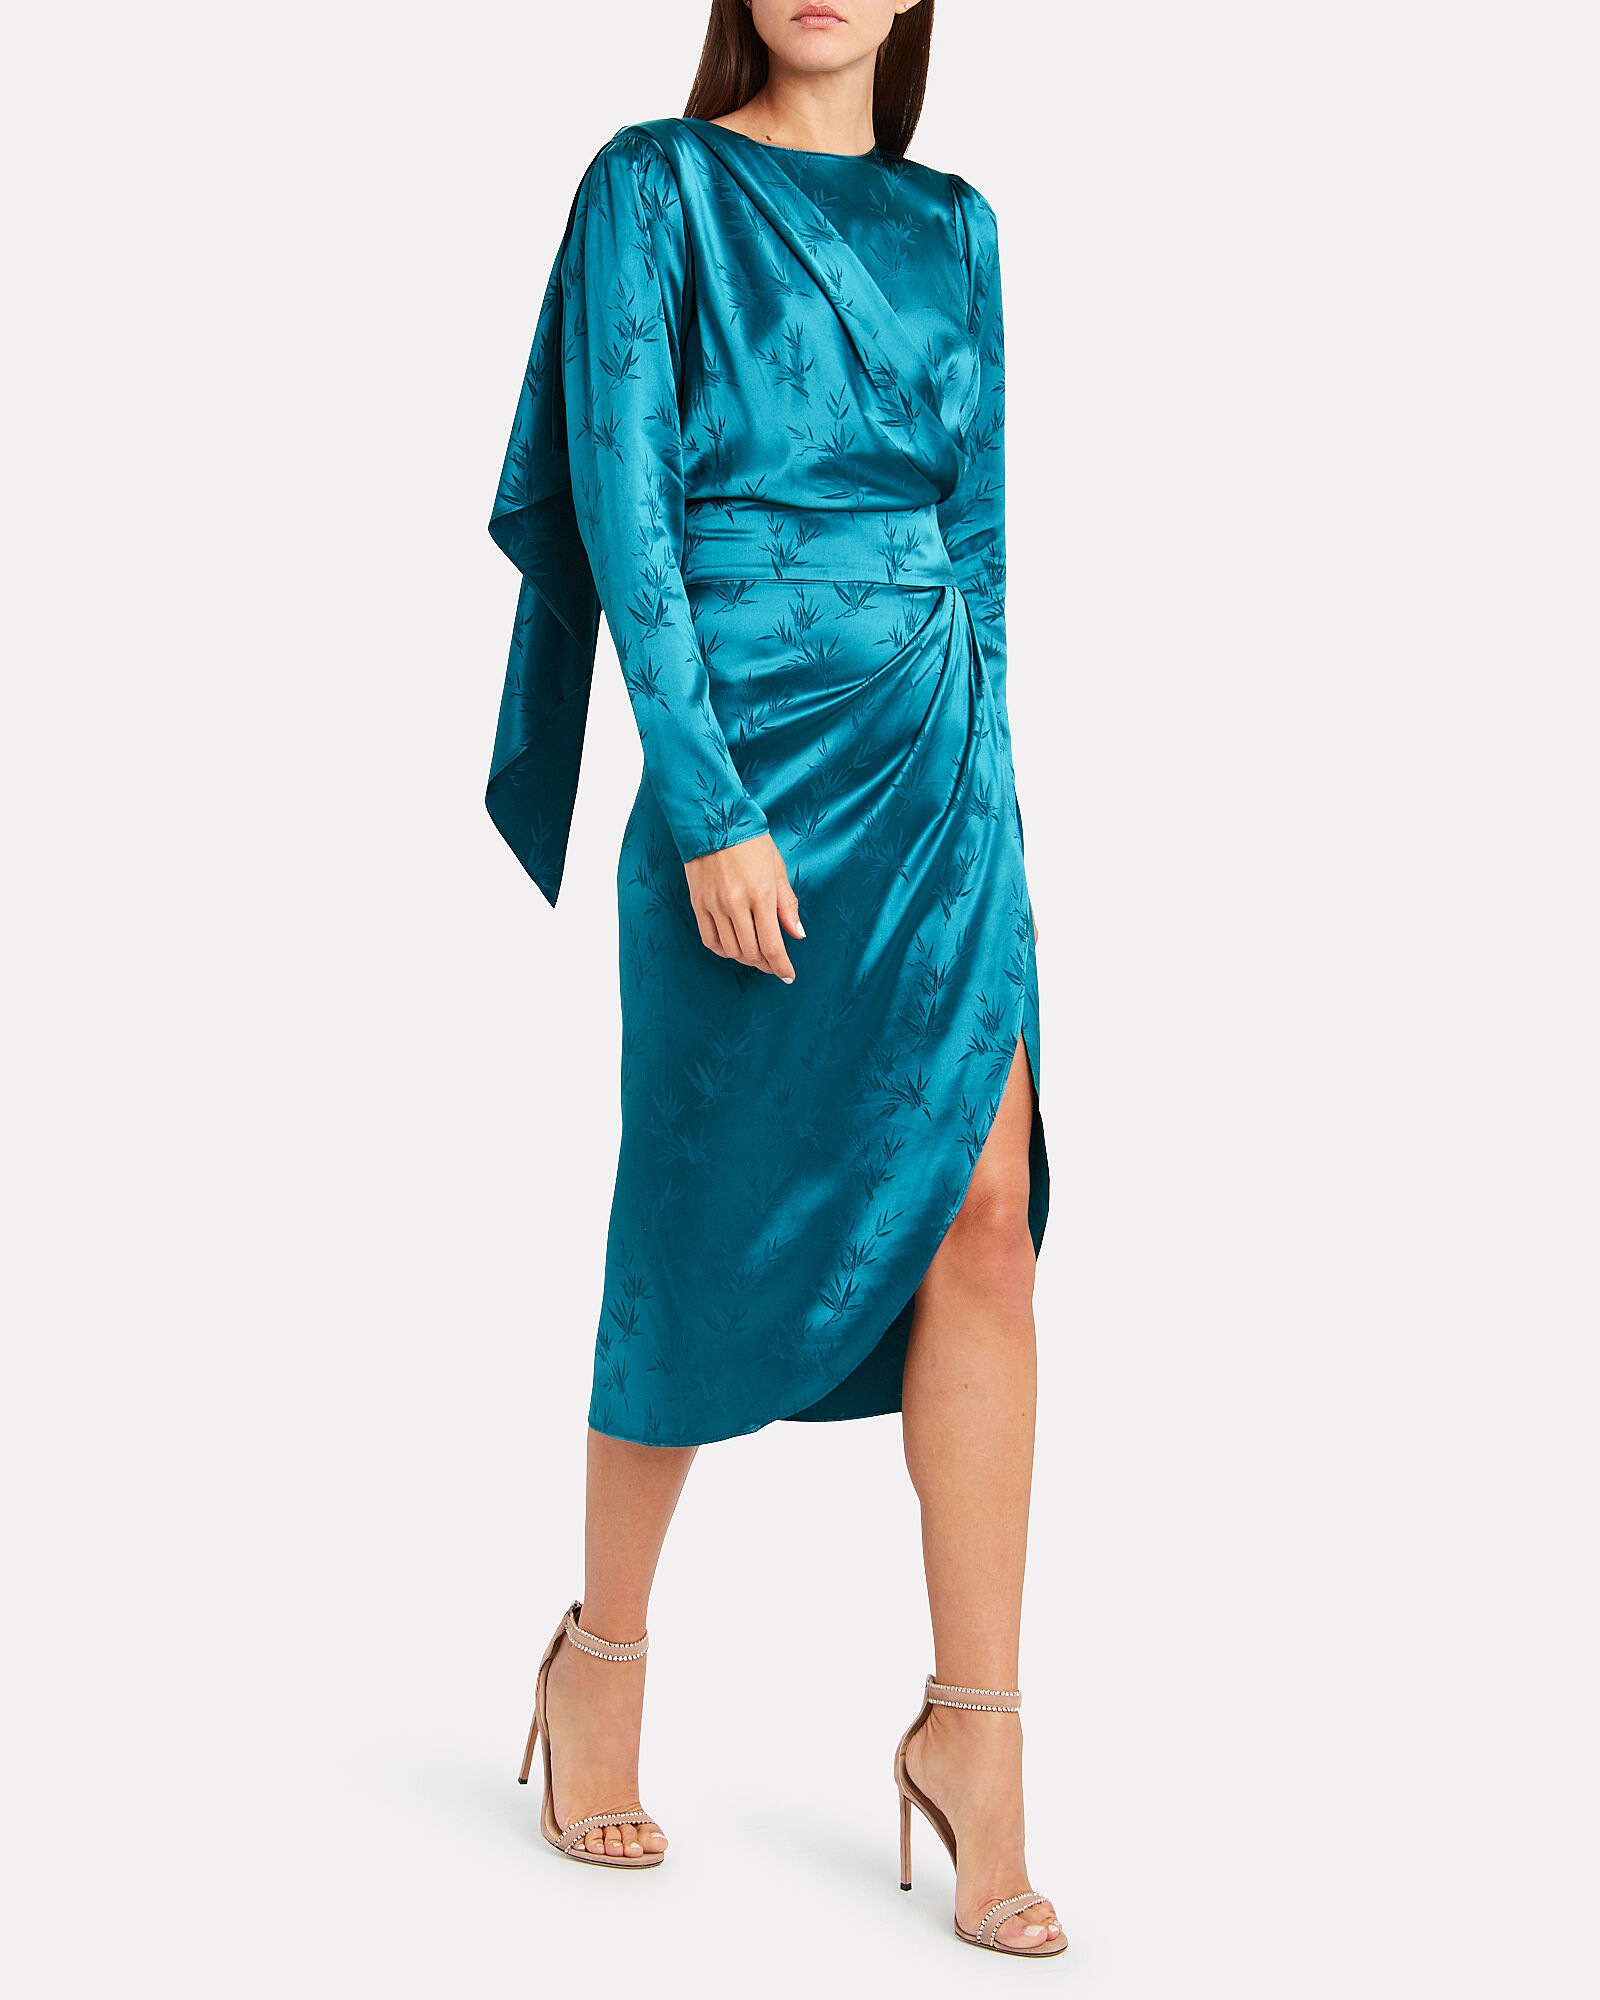 Jade Palm Jacquard Dress, BLUE-DRK, hi-res